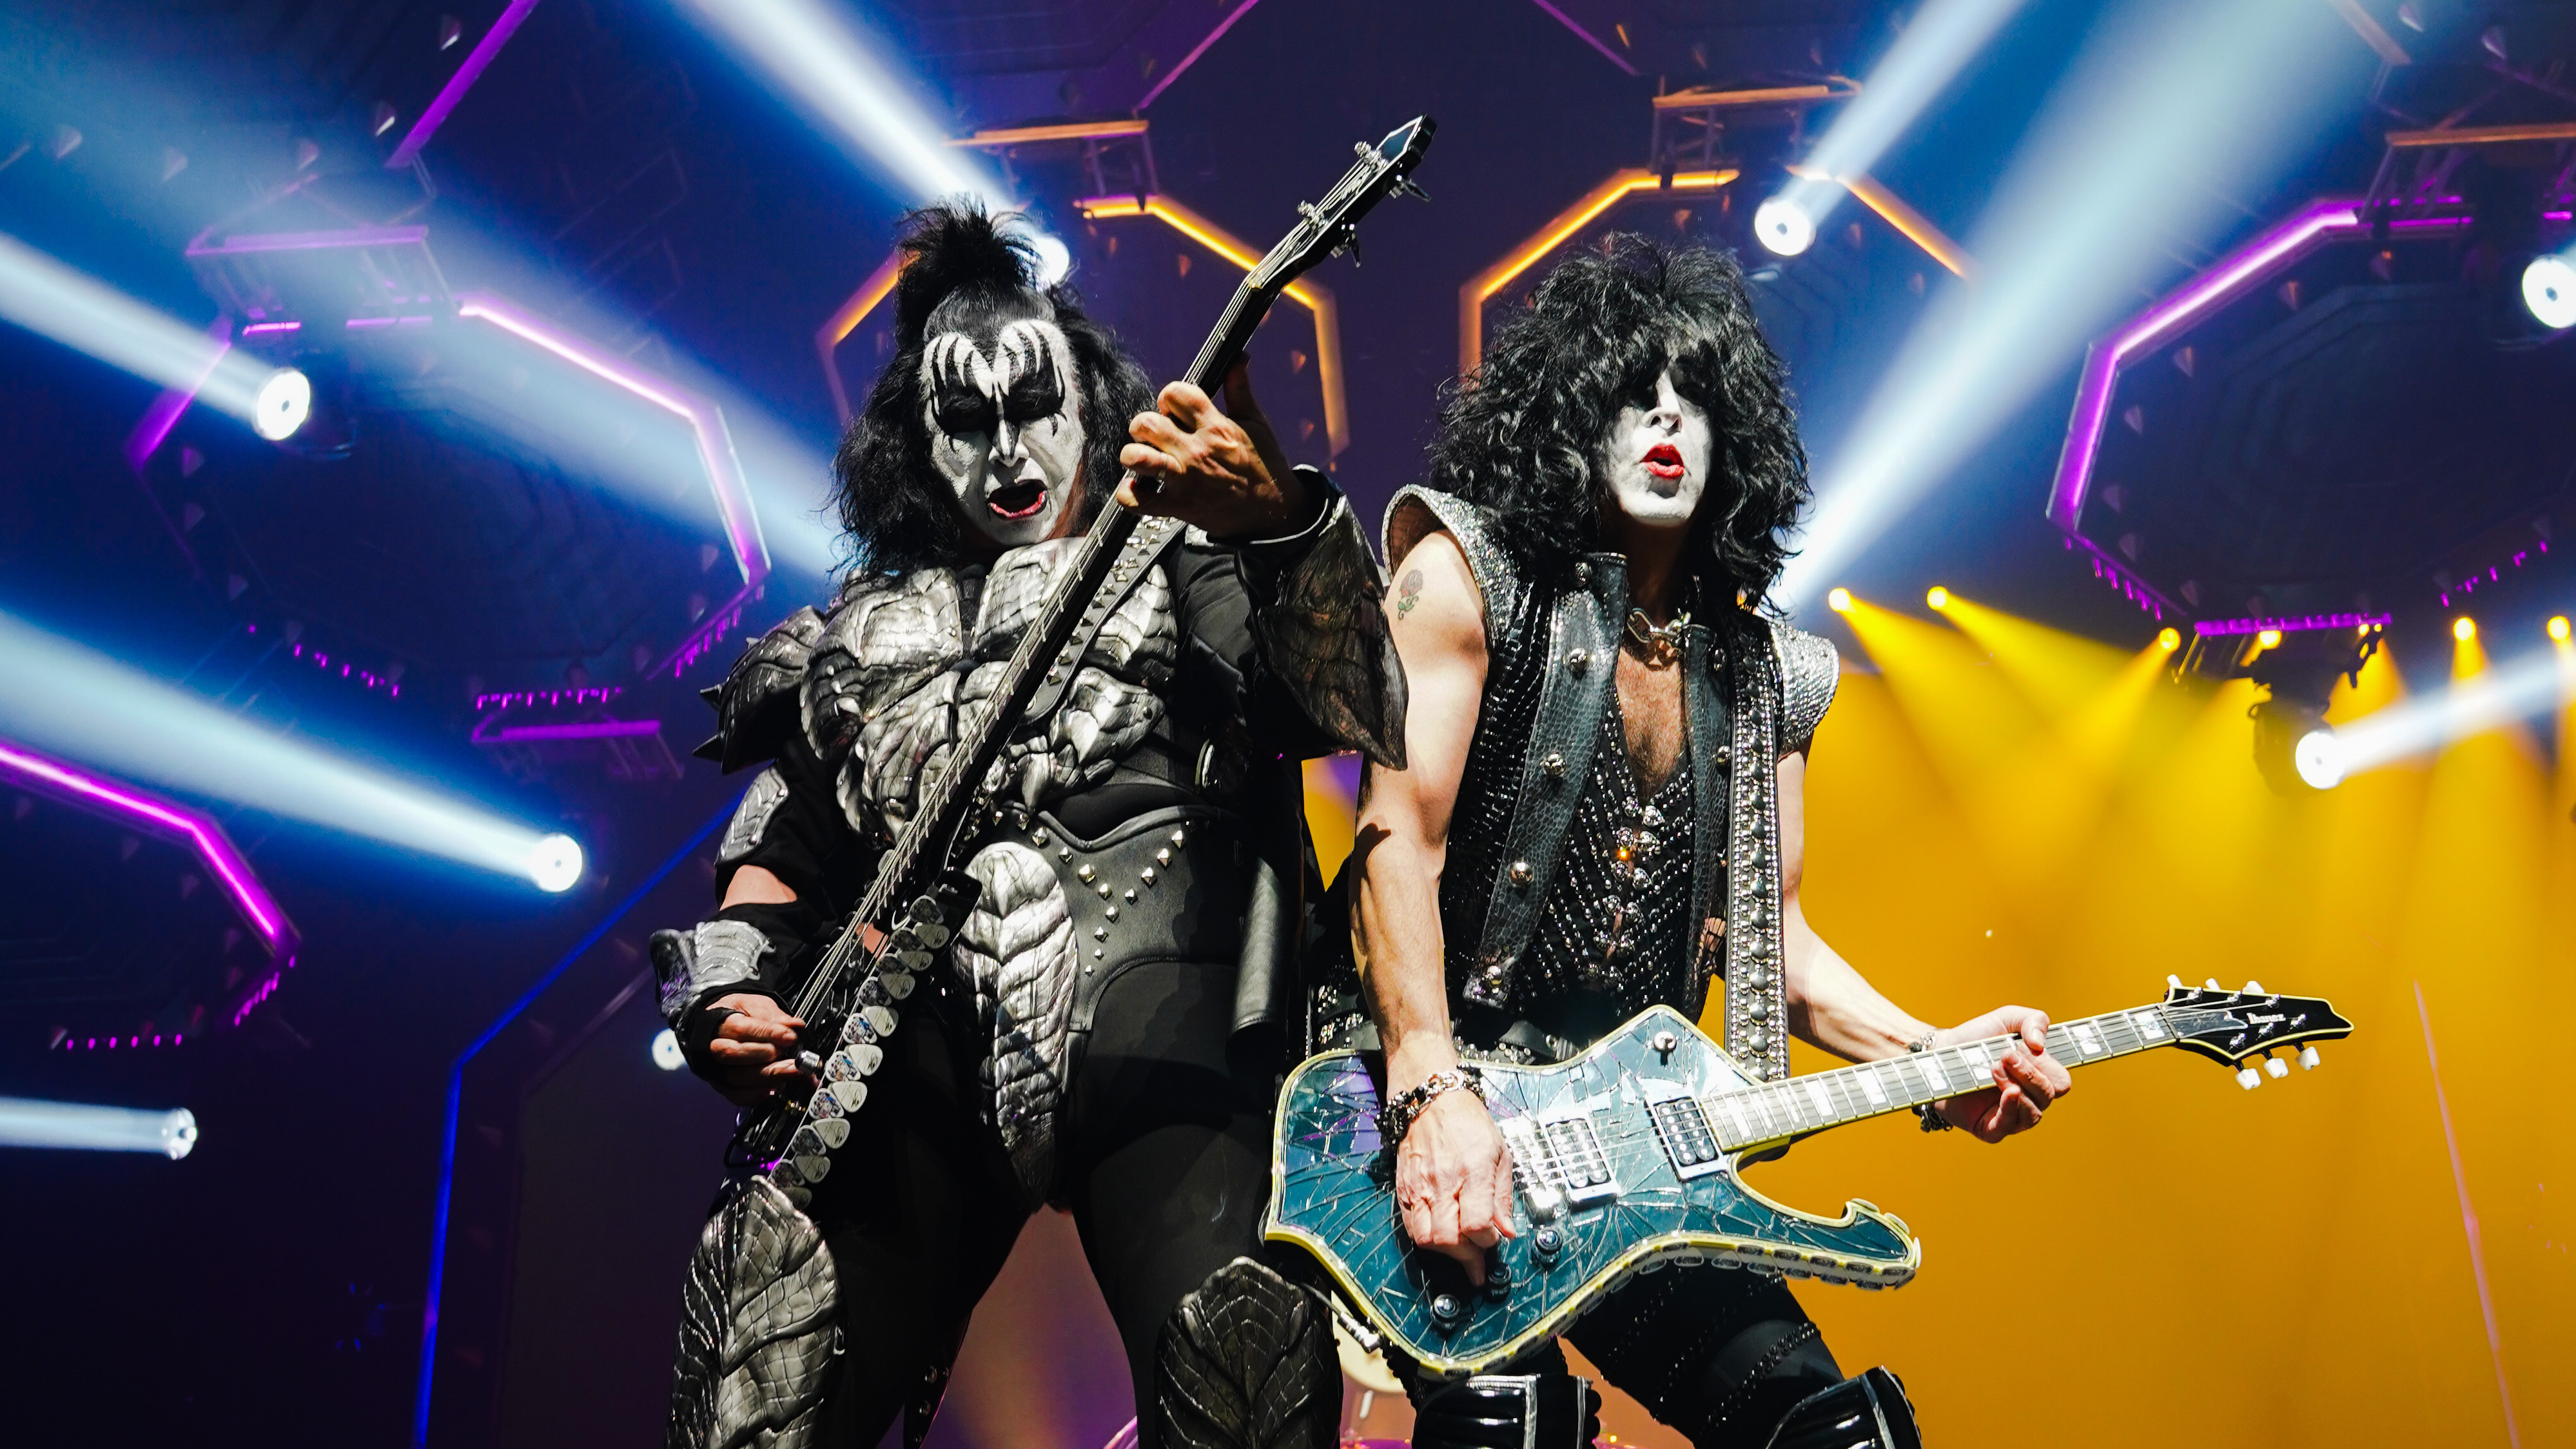 'We Wanted To Be Larger Than Life': Paul Stanley Of KISS